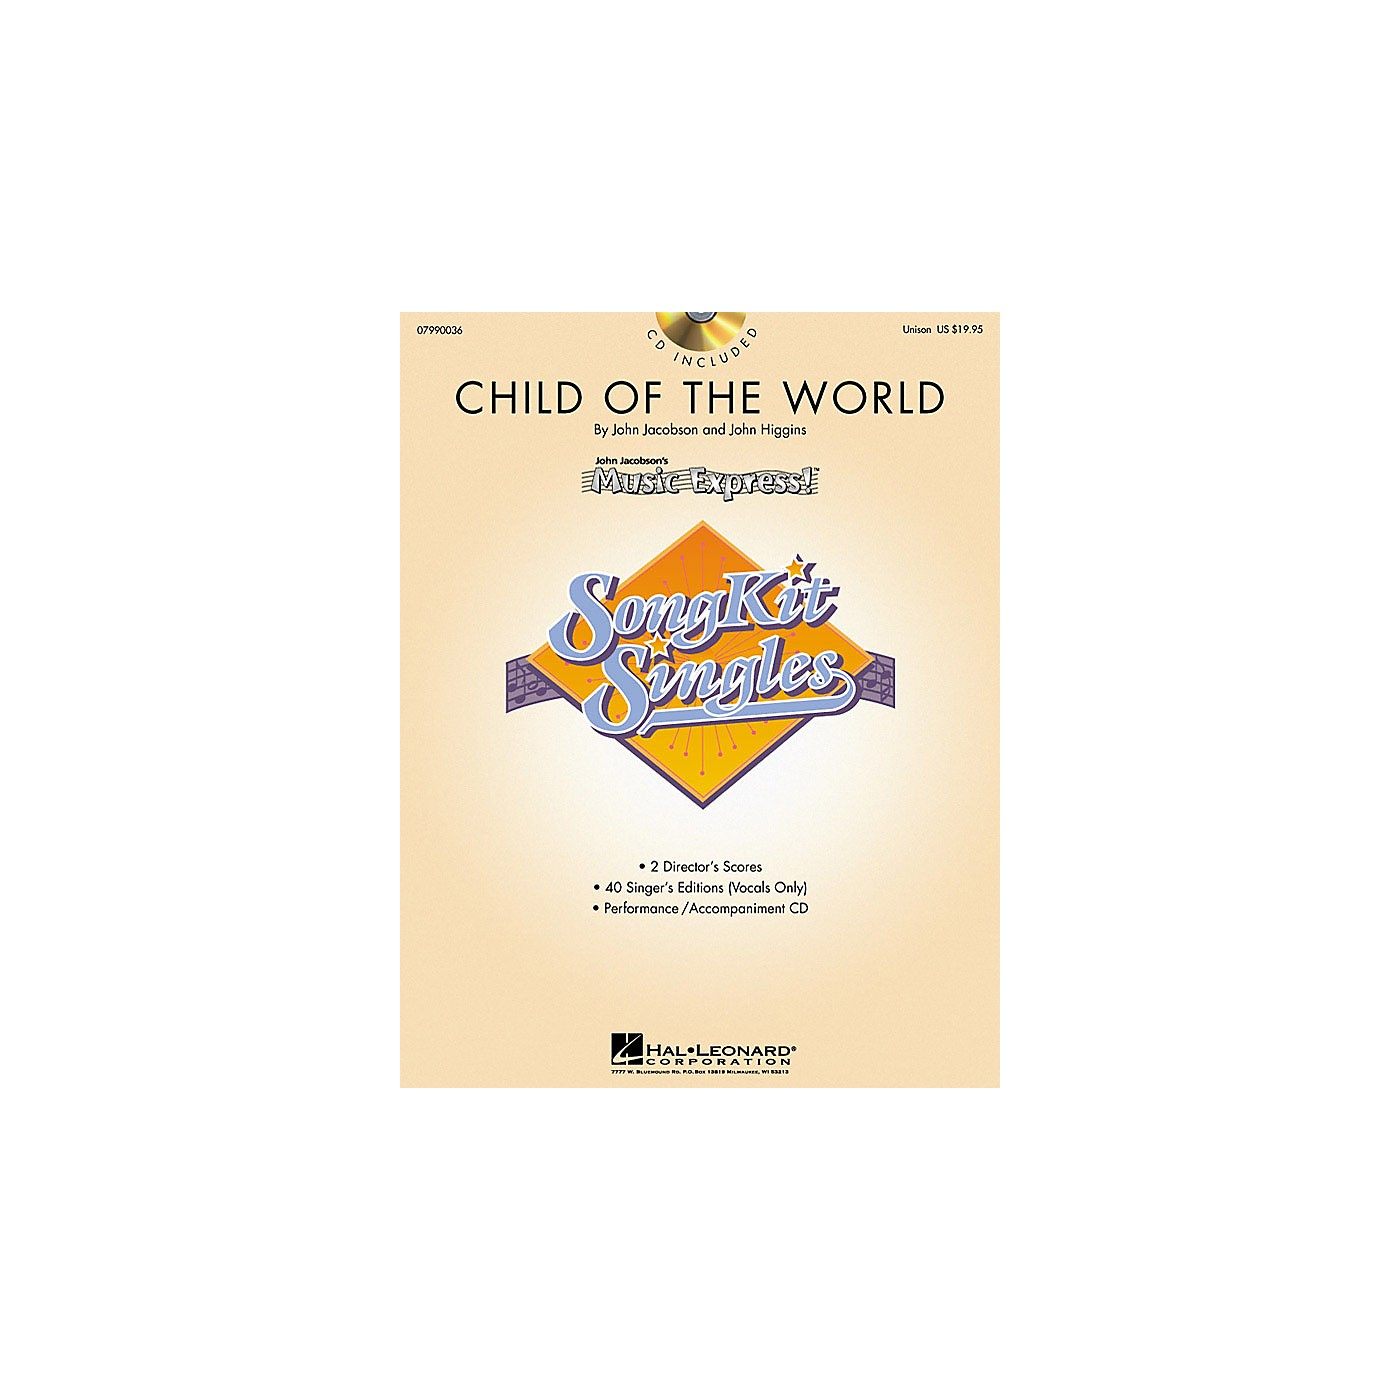 Hal Leonard Child of the World (SongKit Single) (Unison) UNIS Composed by John Higgins thumbnail